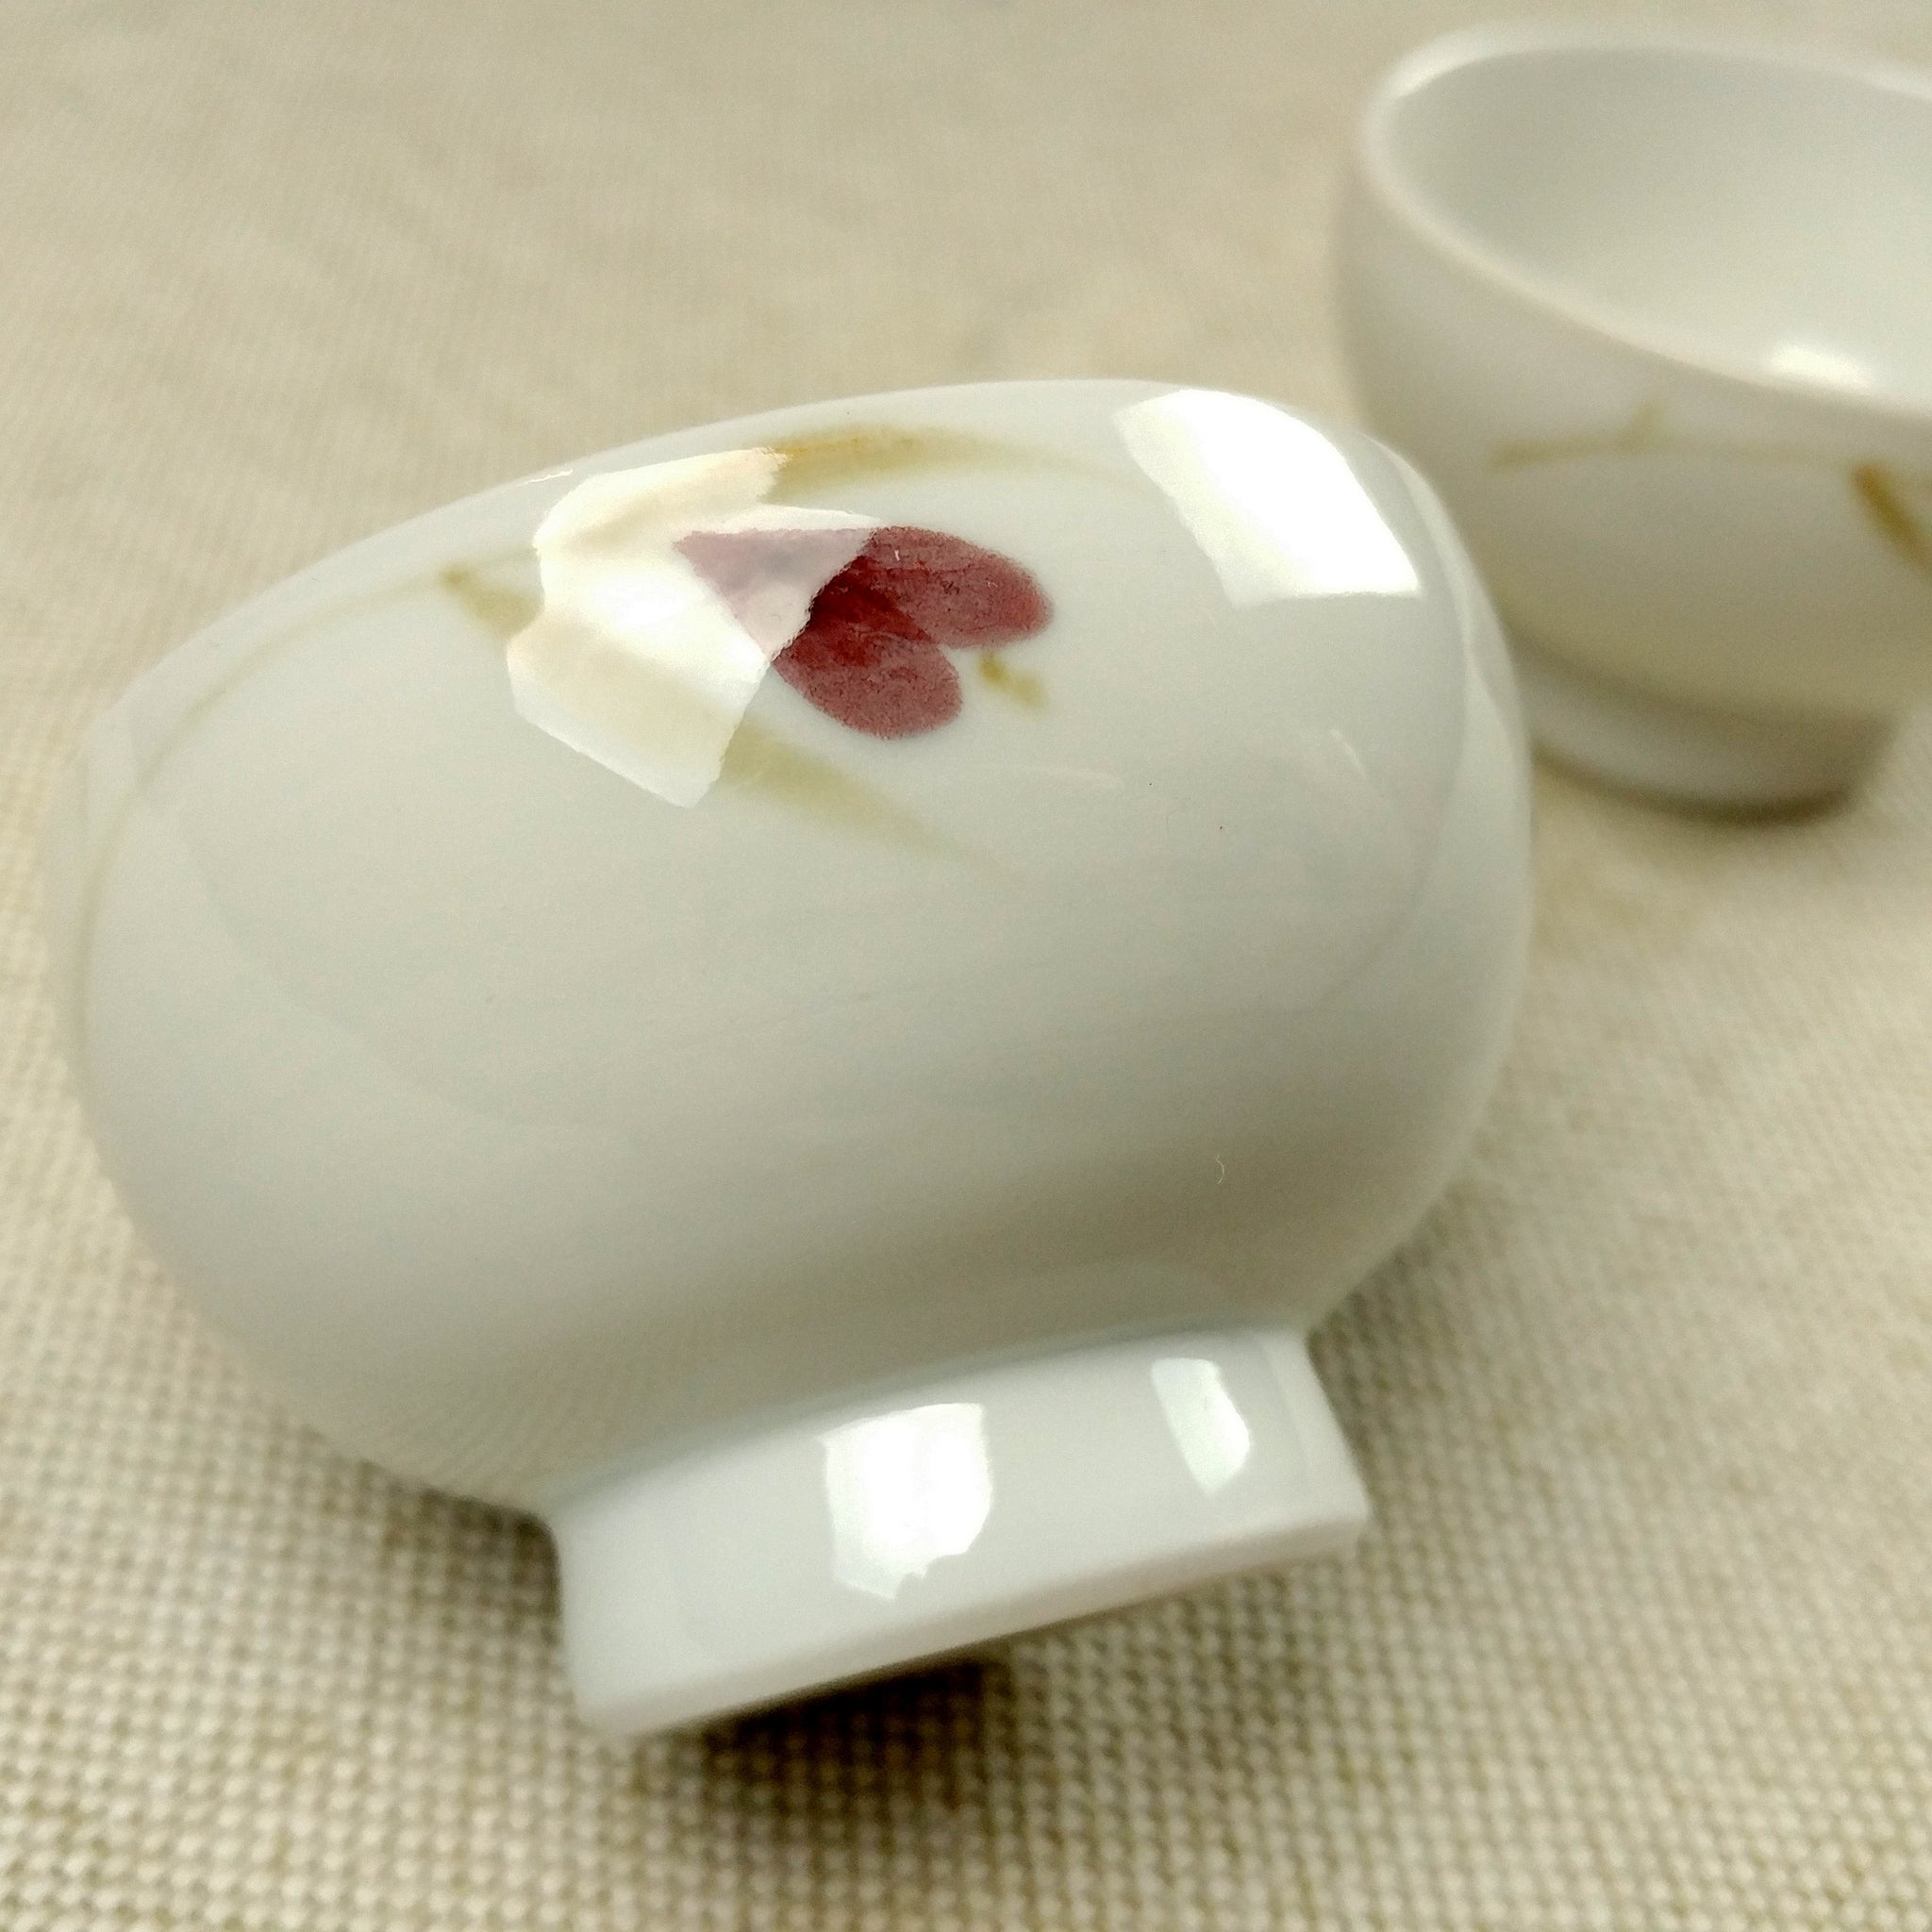 Korean porcelain teacup - Yeji